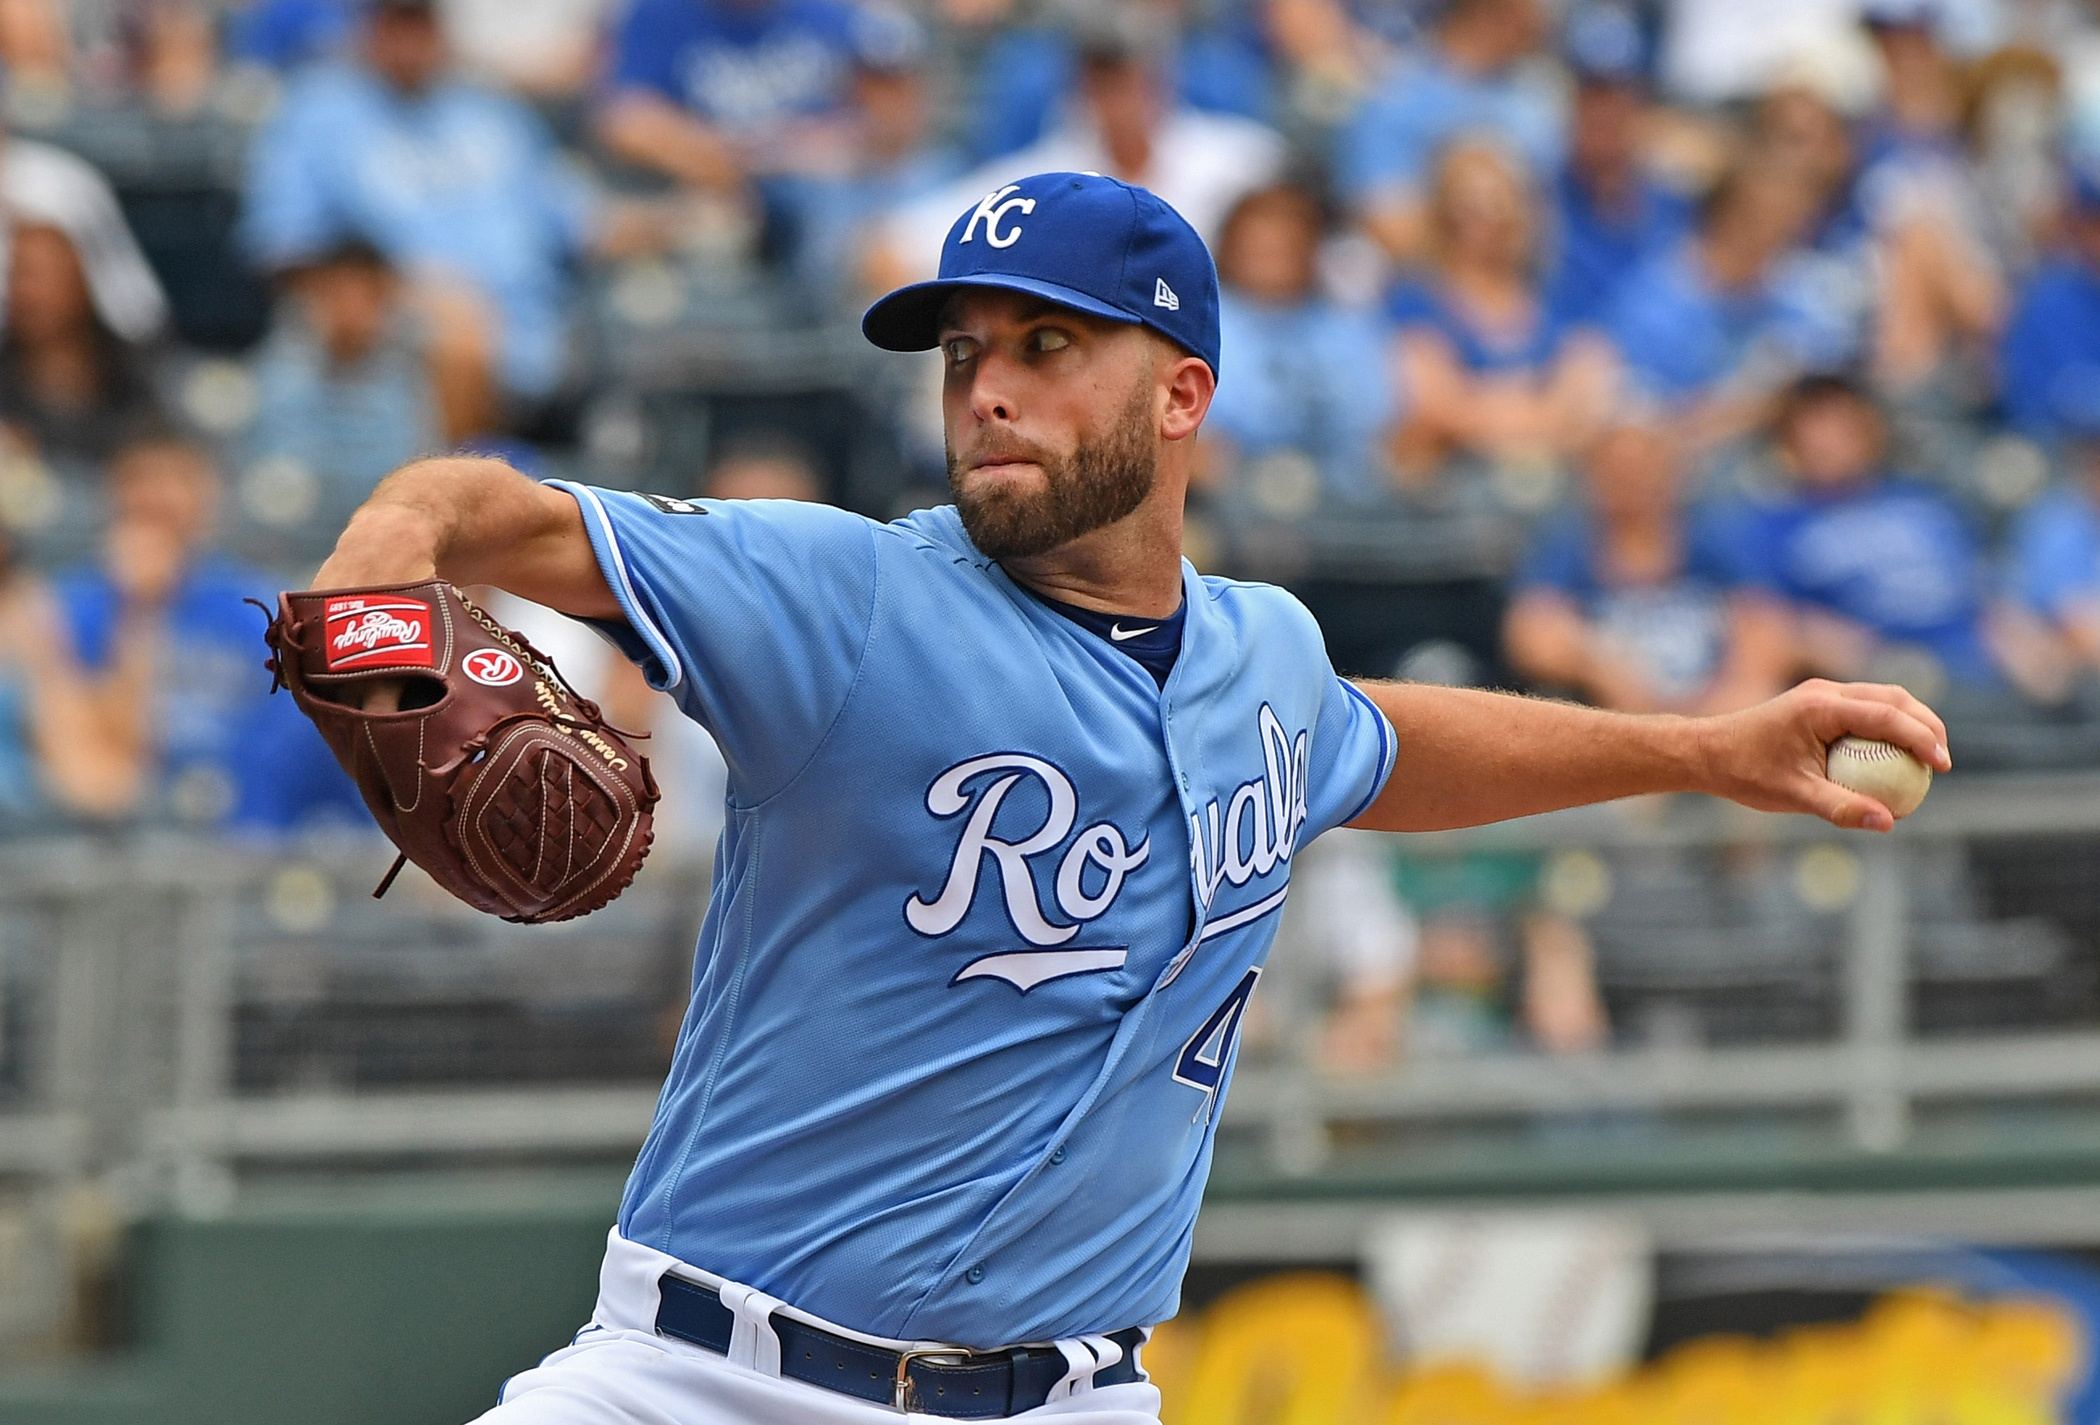 Aug 6, 2017; Kansas City, MO, USA; Kansas City Royals pitcher Danny Duffy (41) delivers a pitch against the Seattle Mariners during the first inning at Kauffman Stadium. Mandatory Credit: Peter G. Aiken-USA TODAY Sports